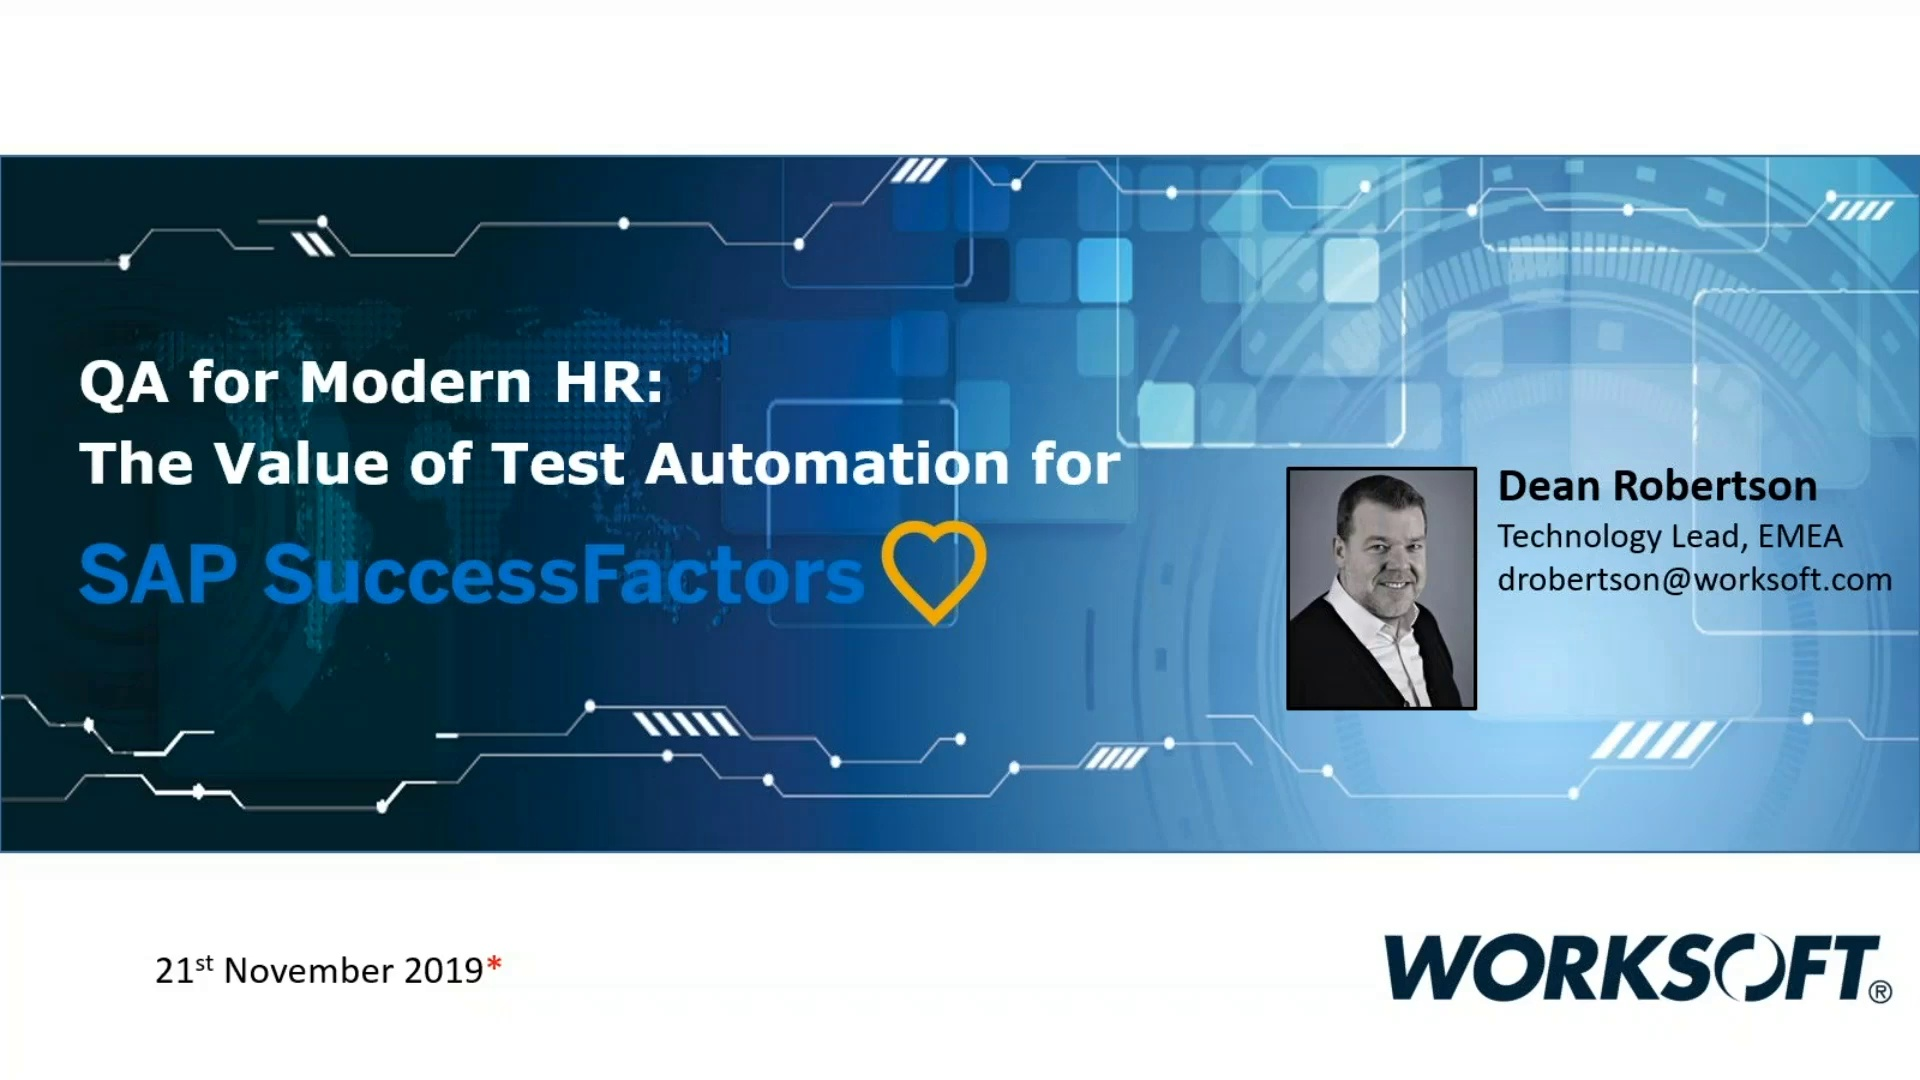 QA for Modern HR: The Value of Test Automation for SAP Success Factors